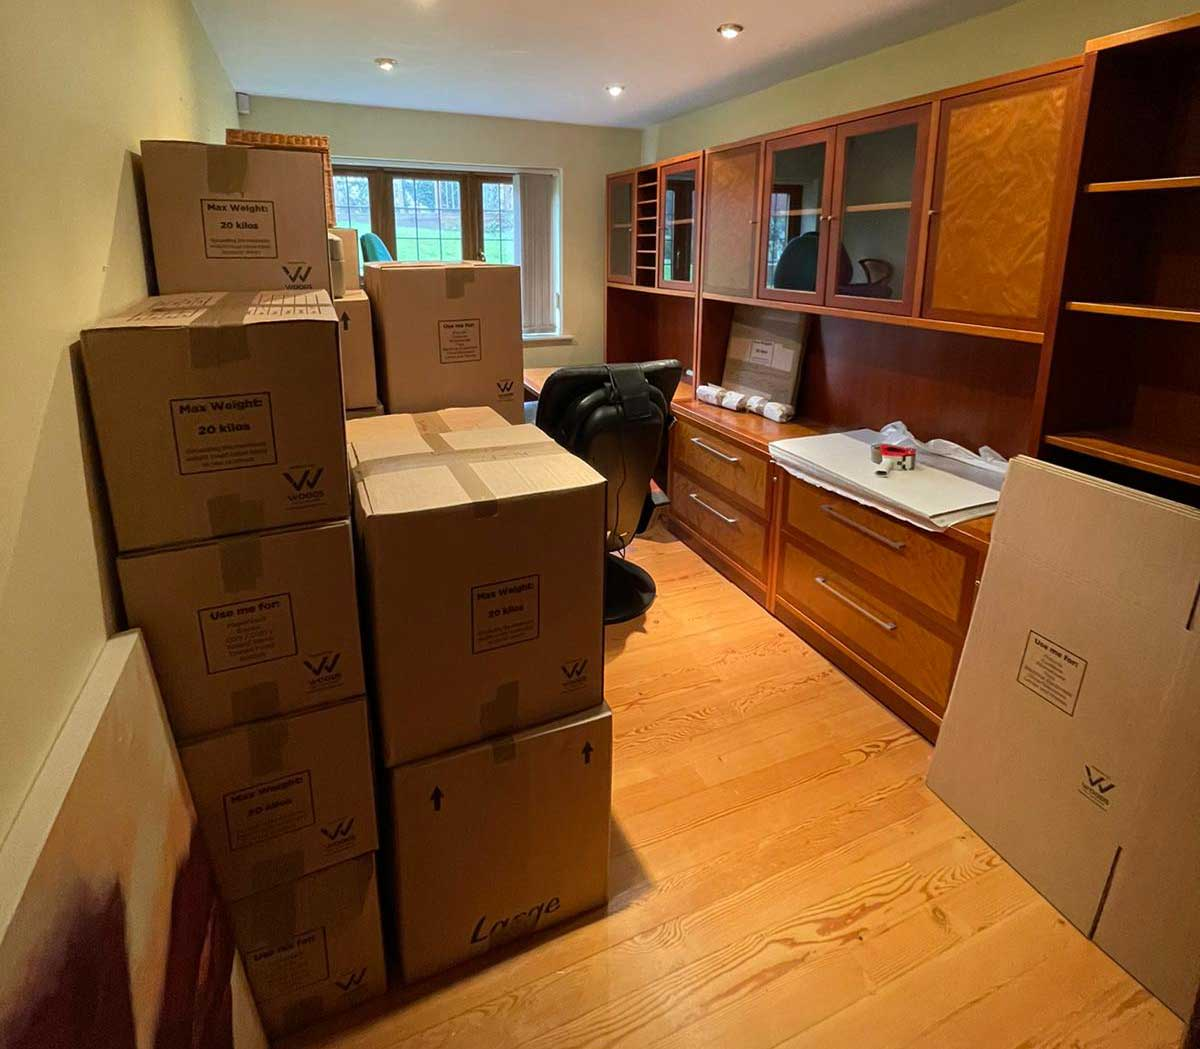 An office in a house all packed up and ready to move by A1 Removals & Storage